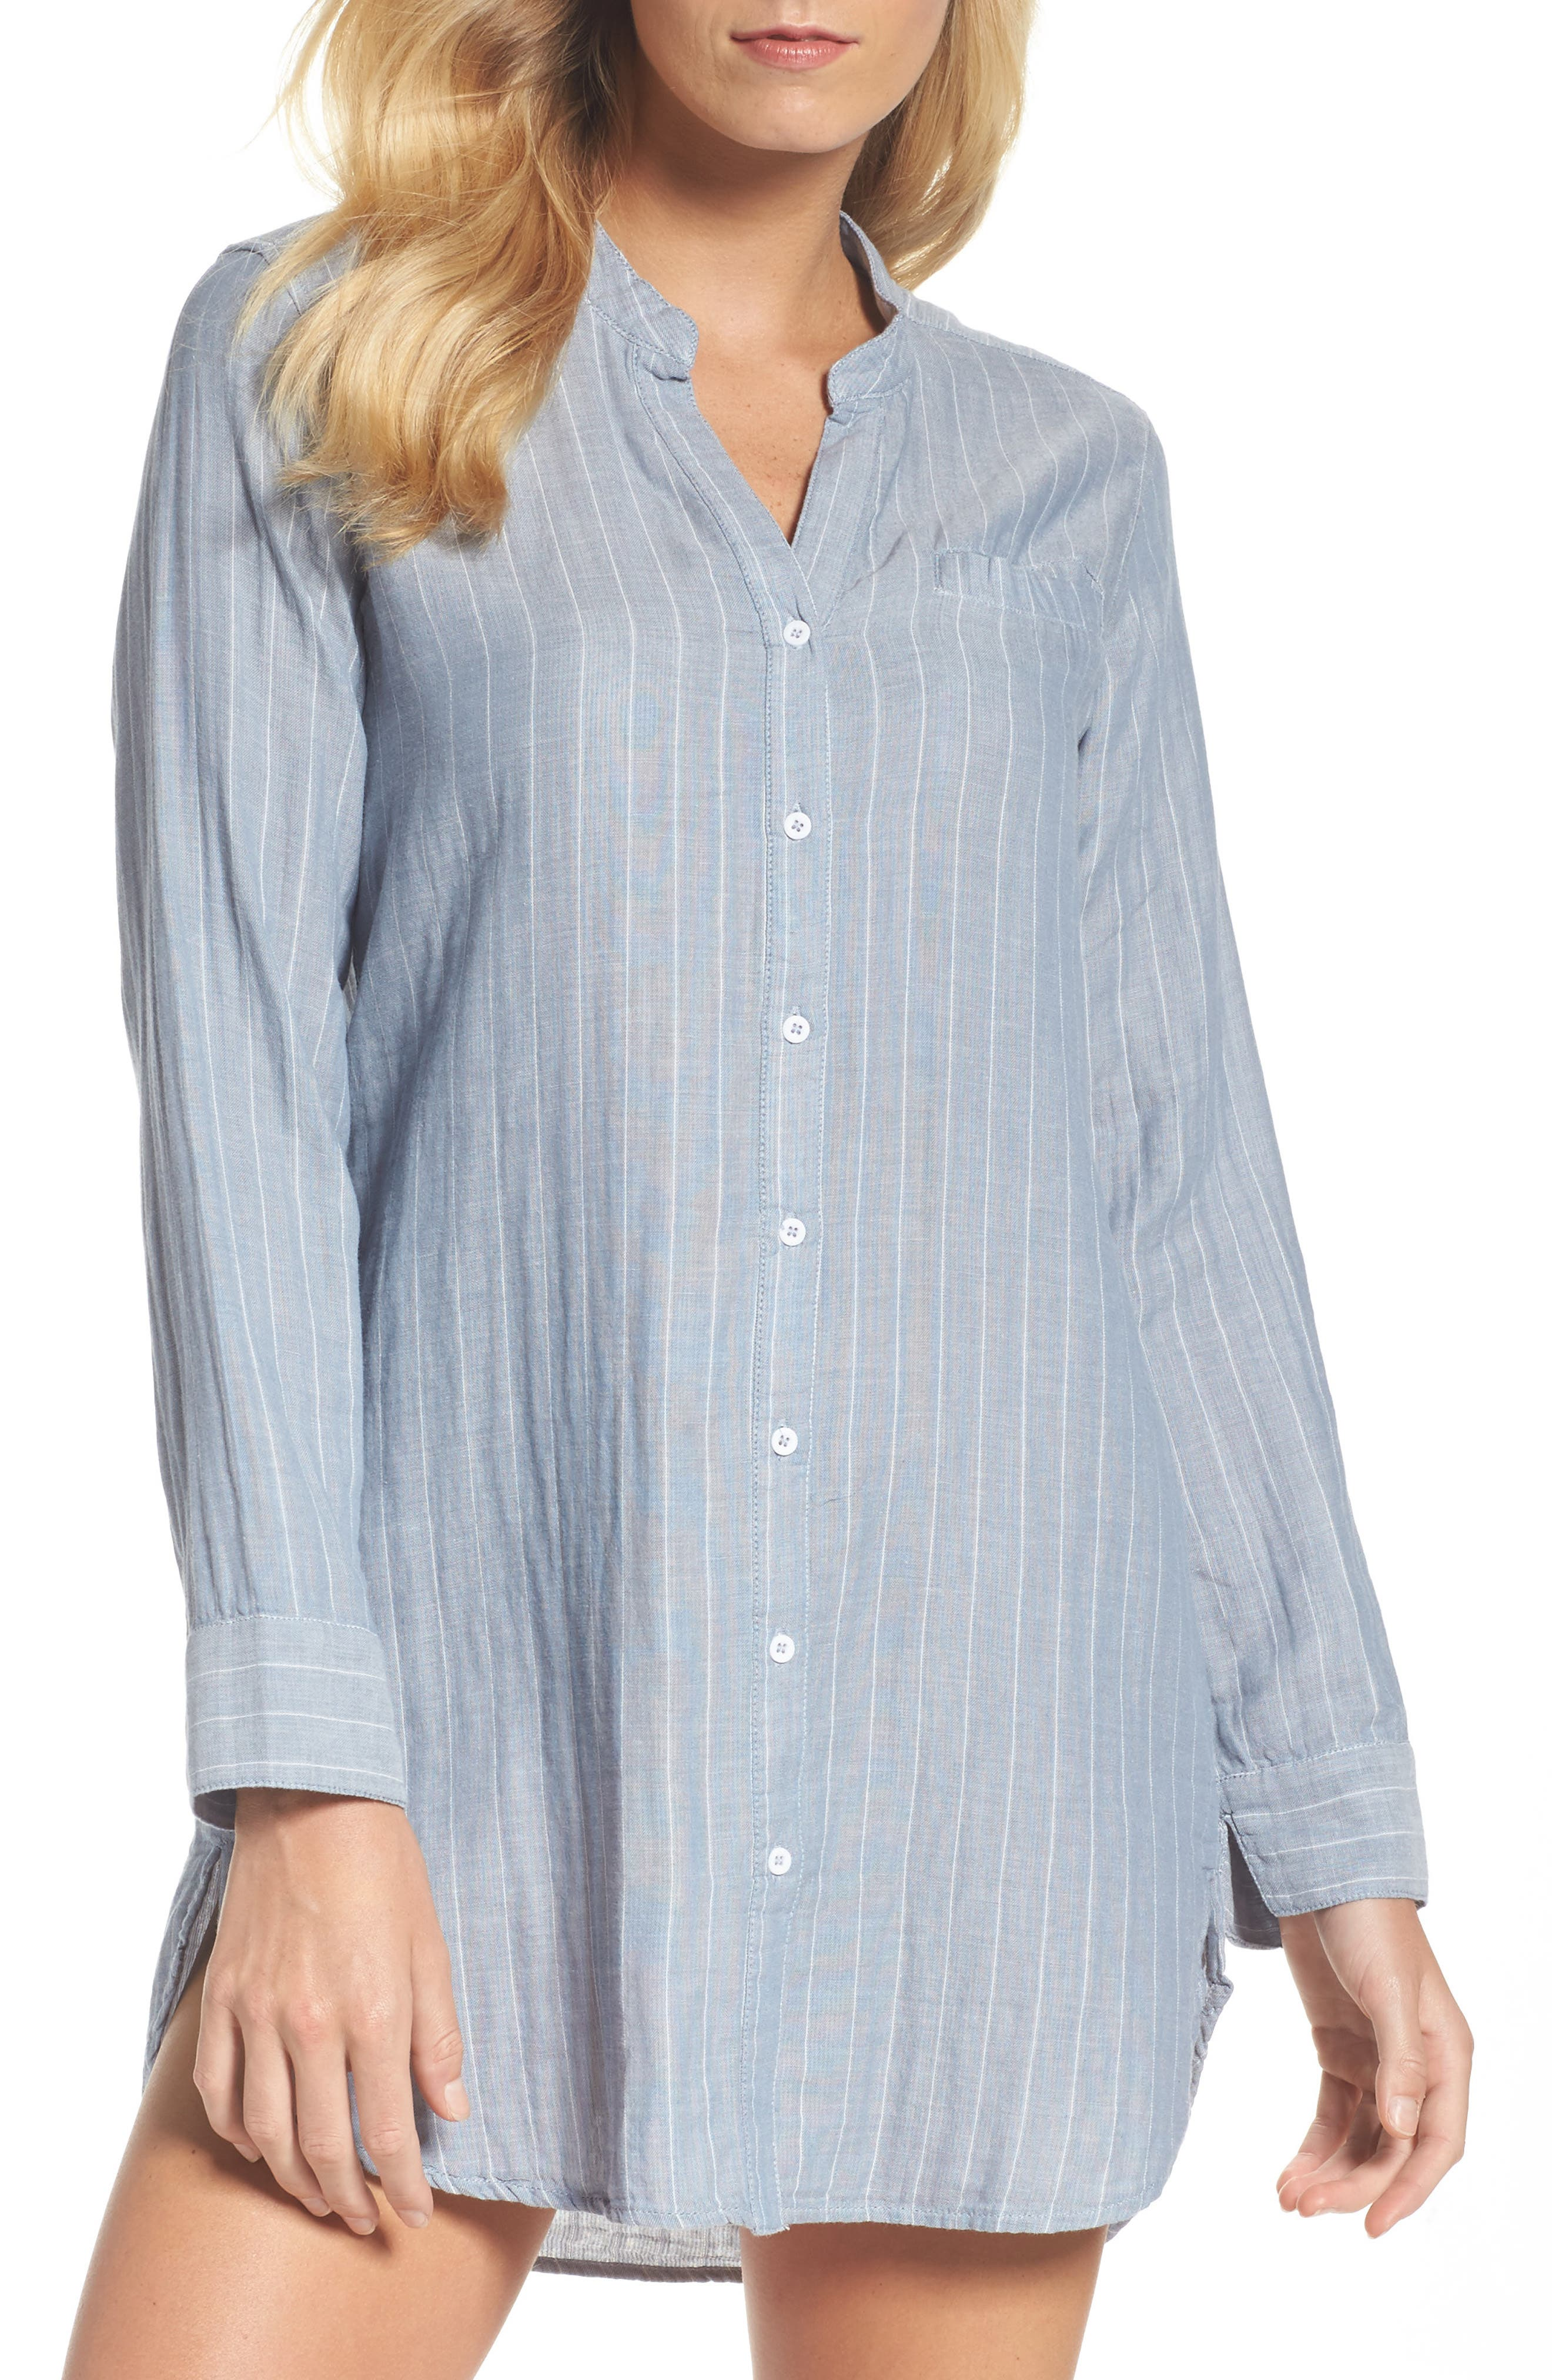 UGG Vivian Stripe Sleep Shirt,                             Main thumbnail 1, color,                             400